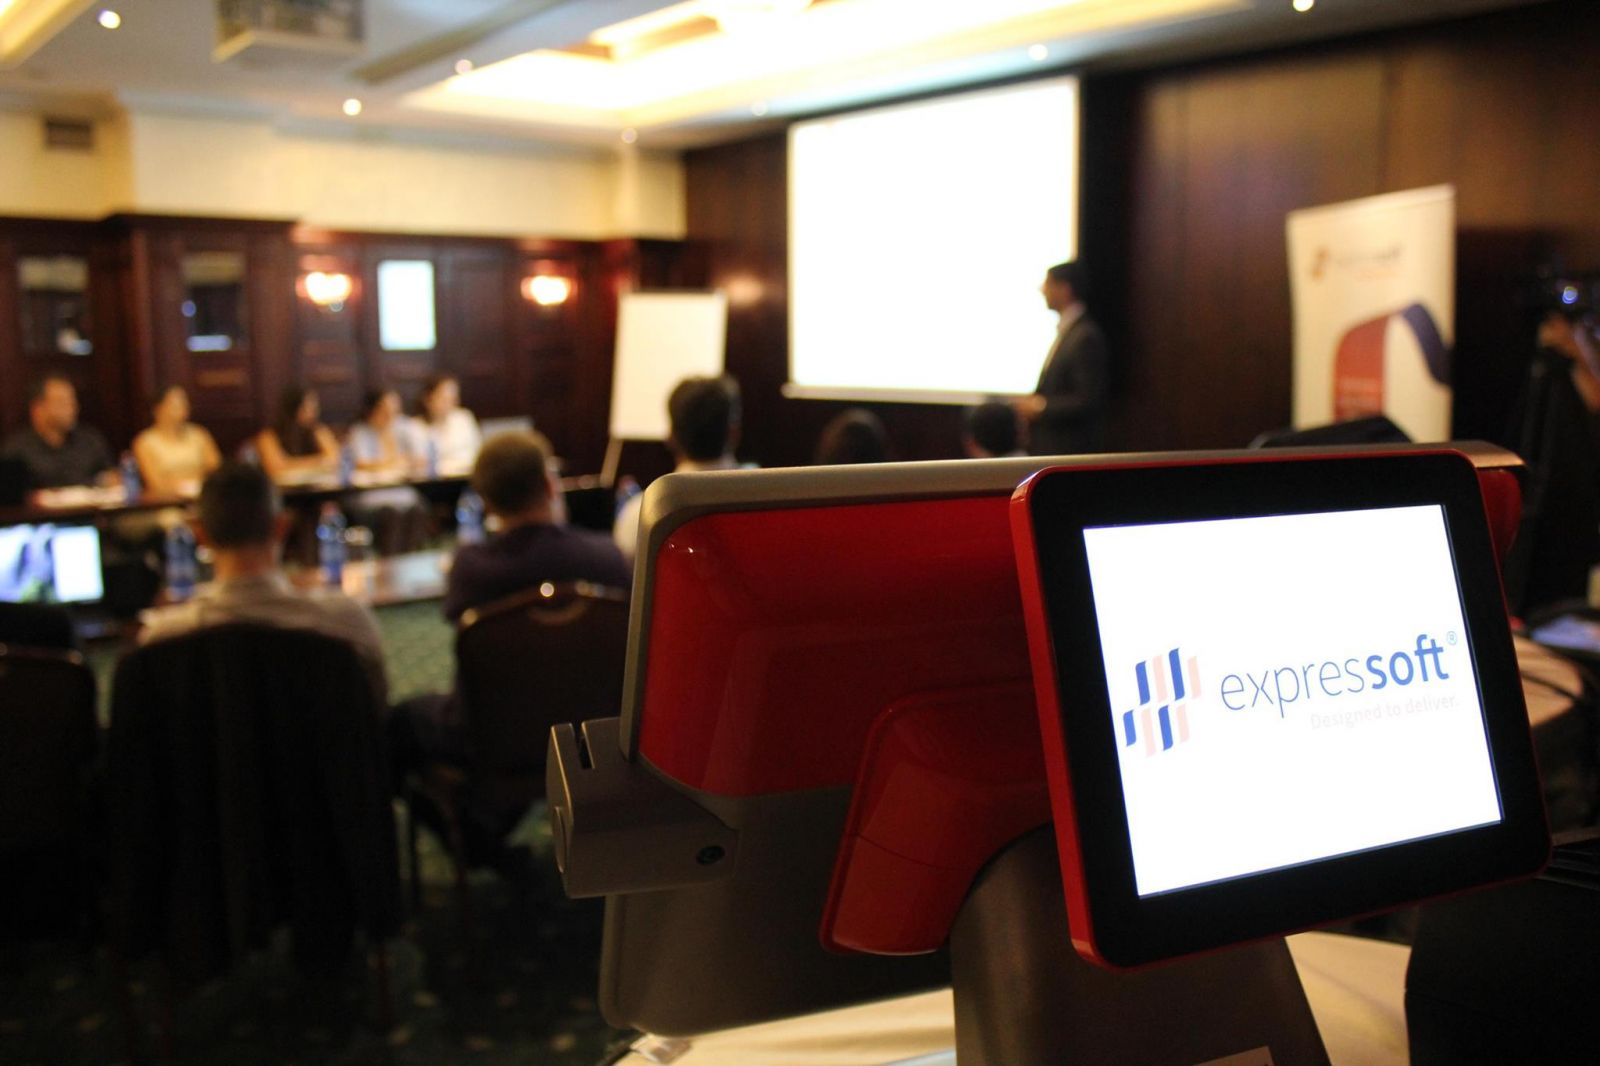 Partenerii nationali si internationali Expressoft, reuniti la Bucuresti